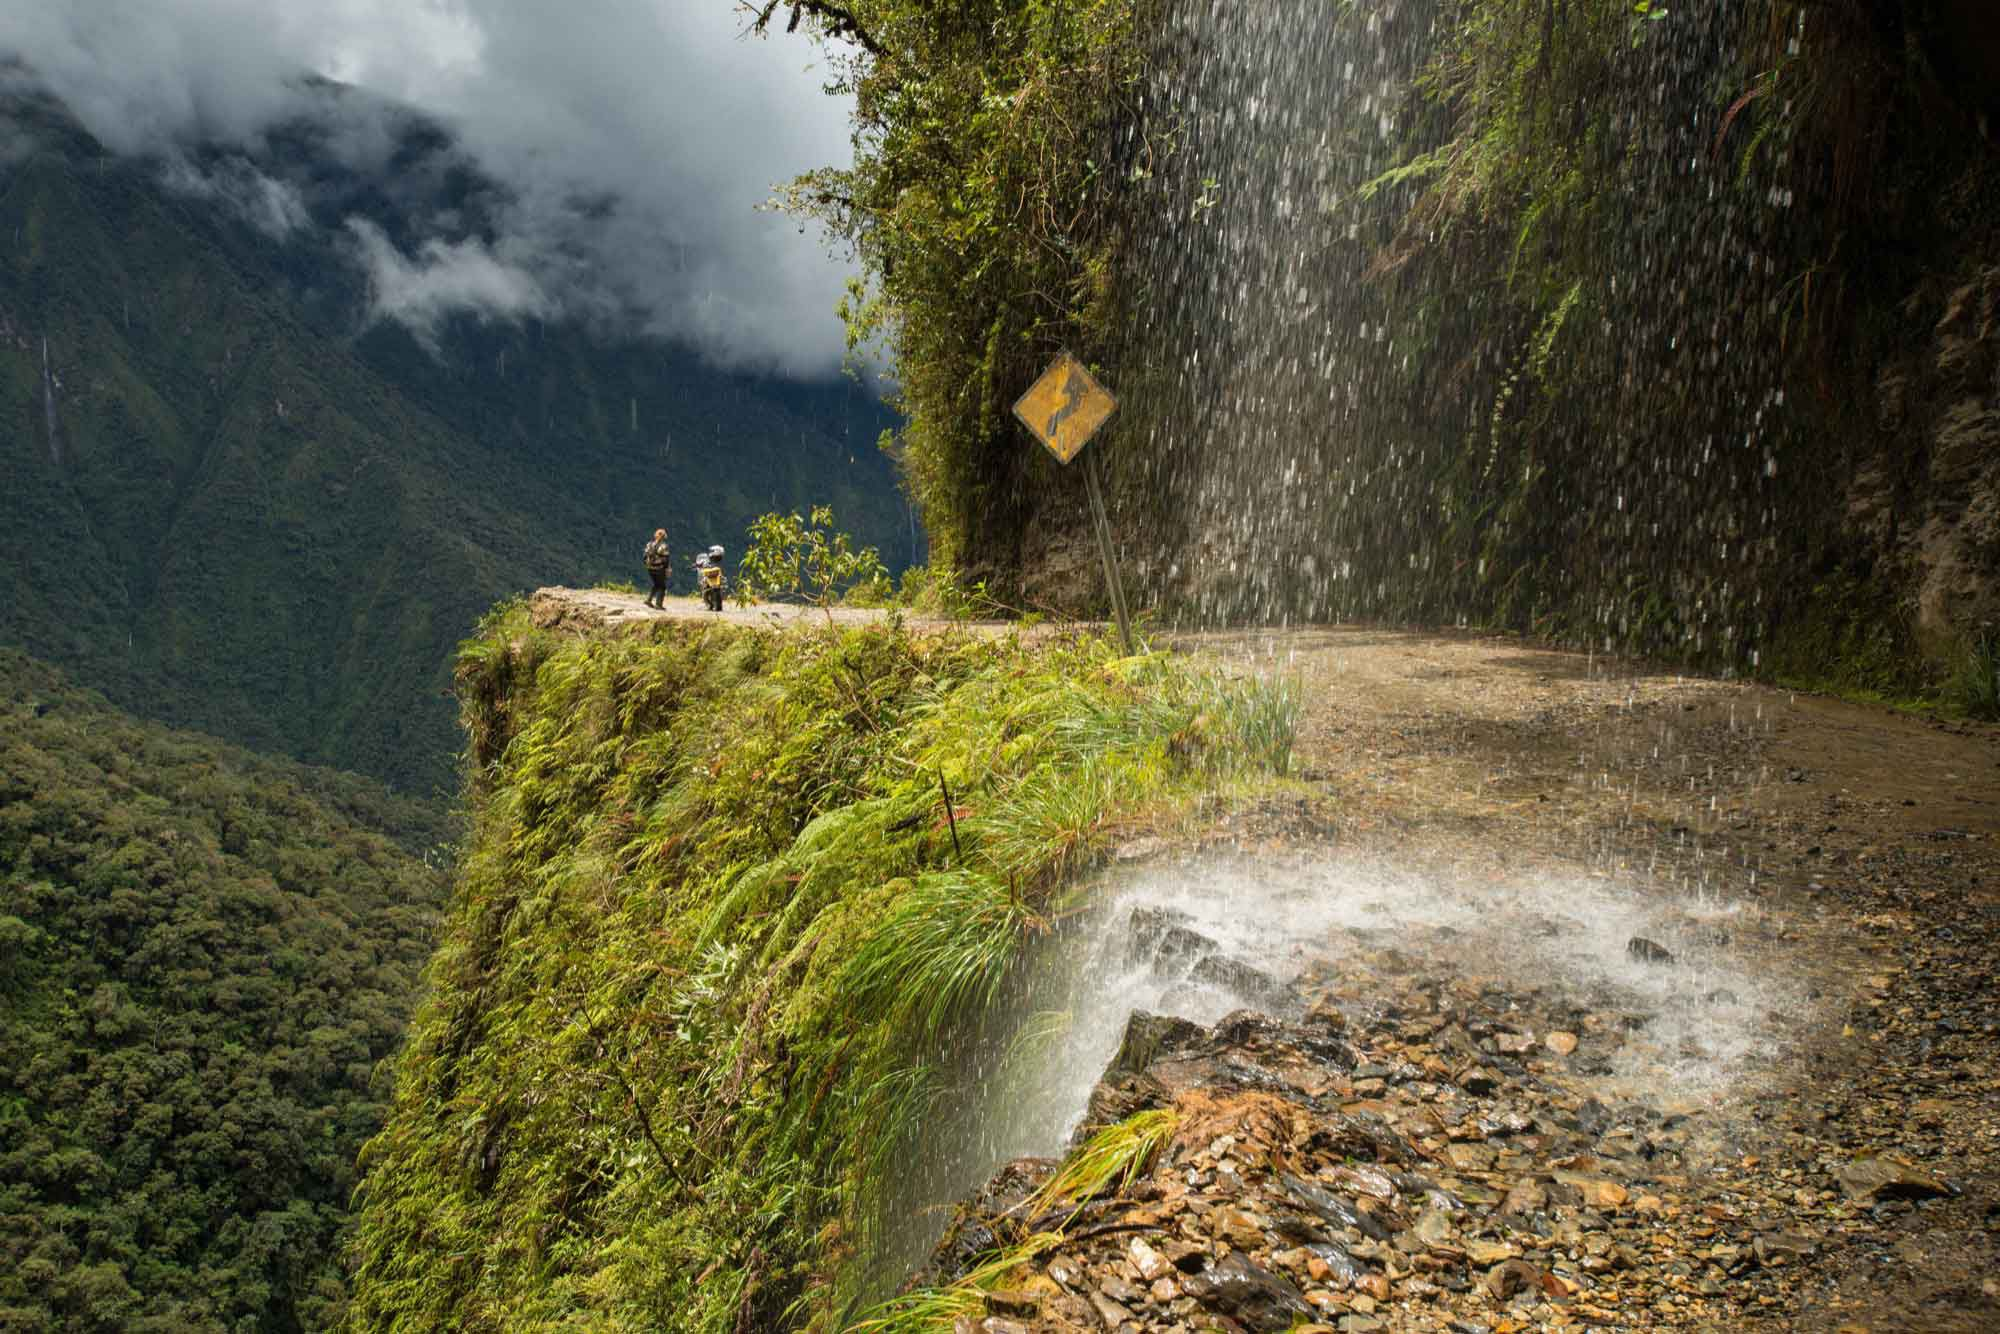 """Having survived Bolivia's """"Road of Death"""" down and back up again, it left me windblown, the mind blown and exhilarated. The visceral experience of jaw-on-the-floor views fast became a regular reward from the two years of saving and sacrifice to get there. (La Paz and Yungas region, Bolivia)"""